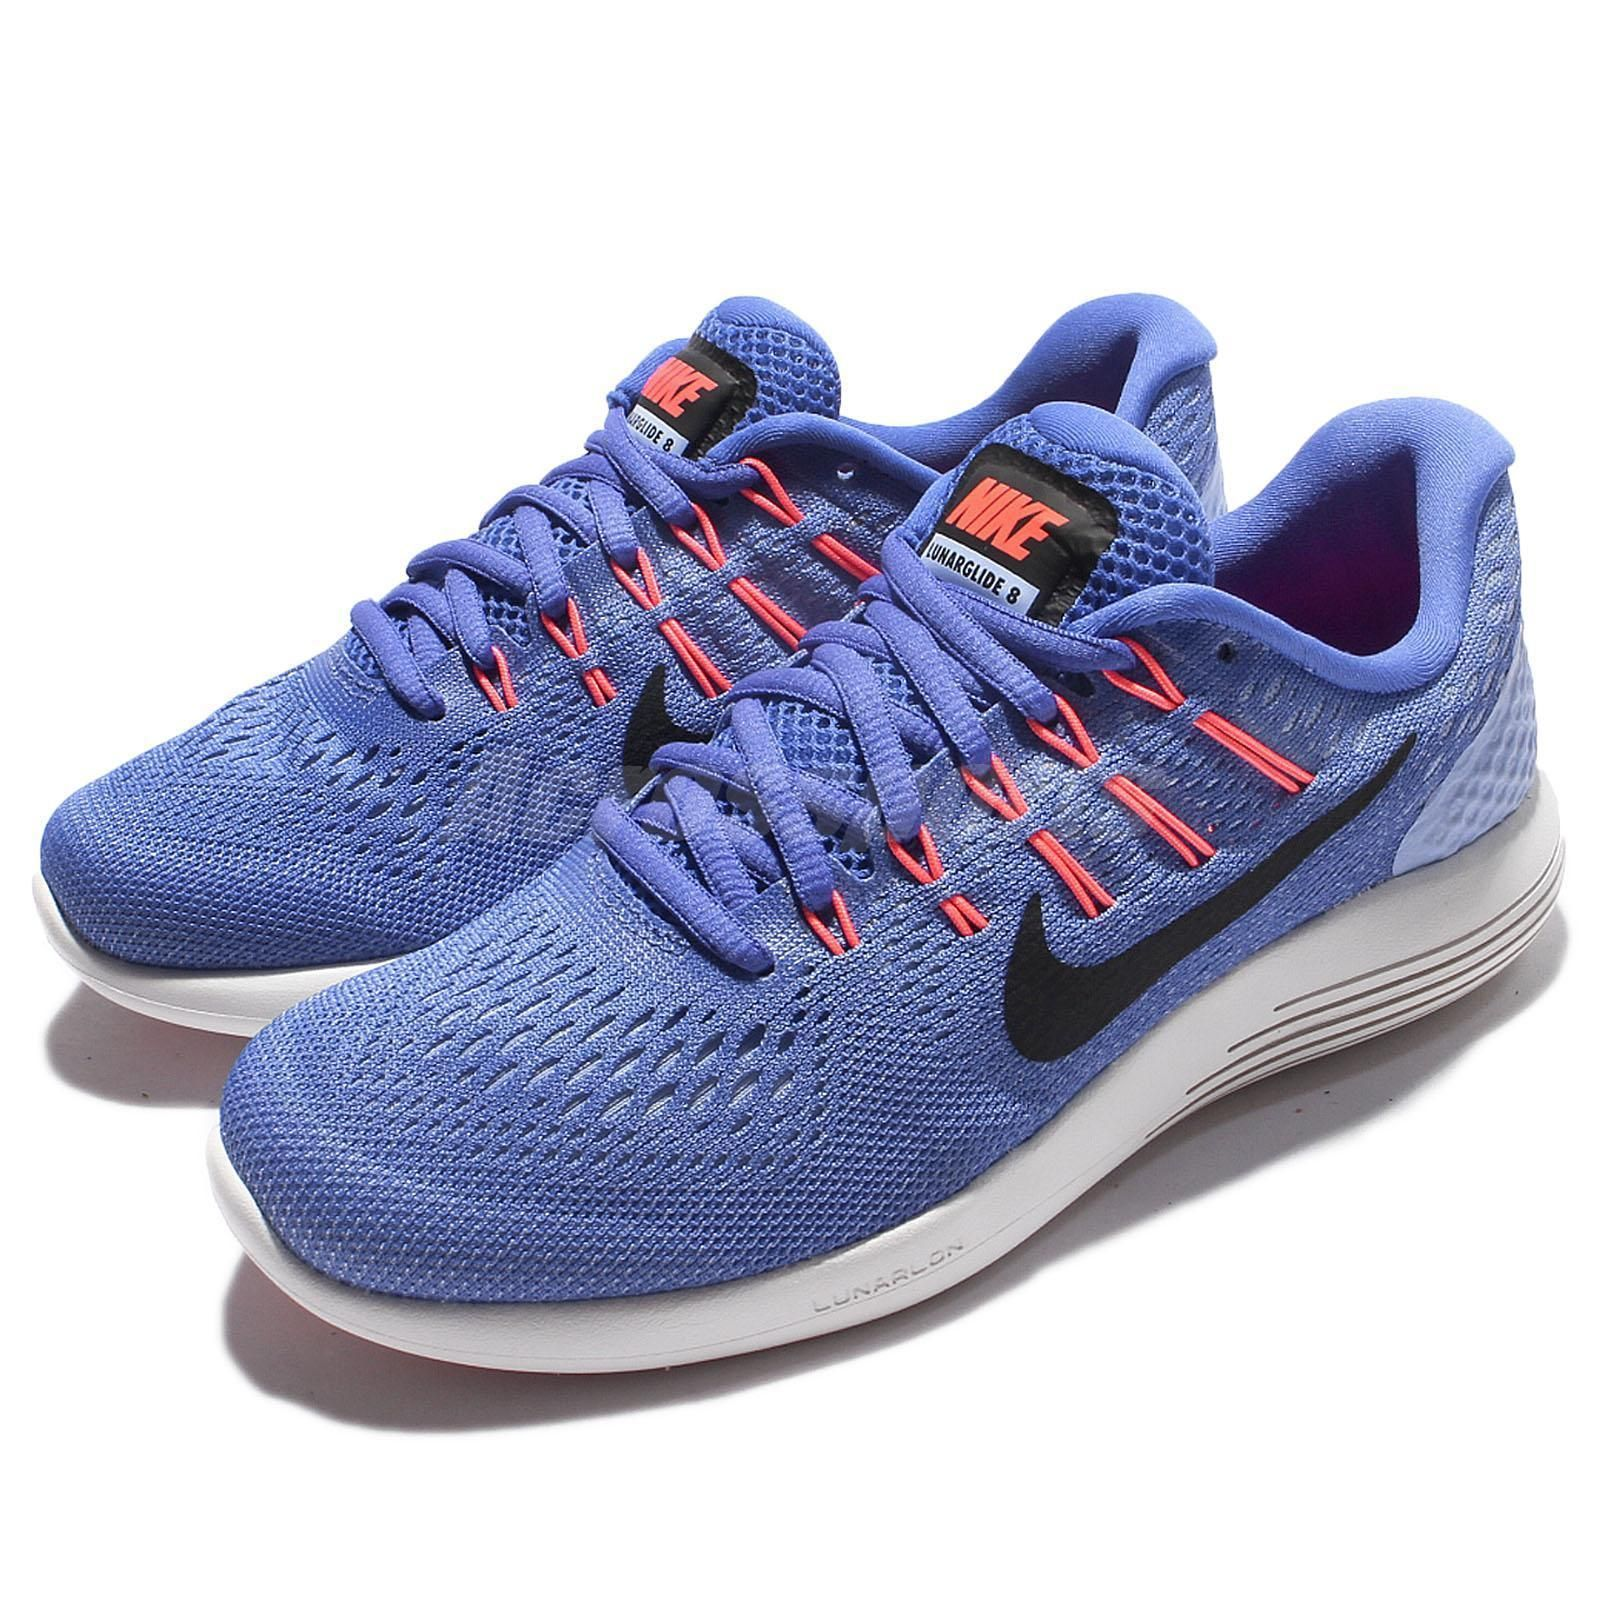 f604e84c8b1dbd ... discount code for wmns nike lunarglide 8 viii blue black women running  shoes sneakers 843726 406